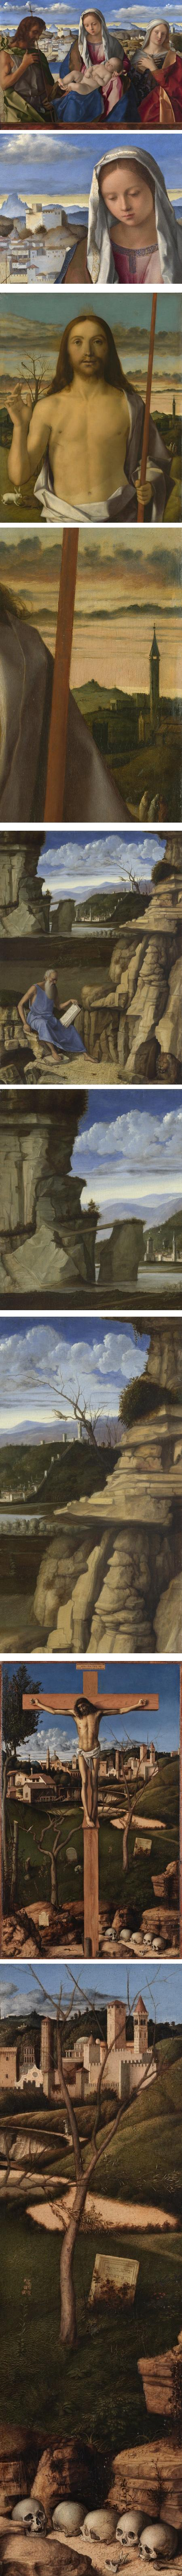 Giovanni Bellini: Landscapes of Faith in Renaissance Venice at the Getty